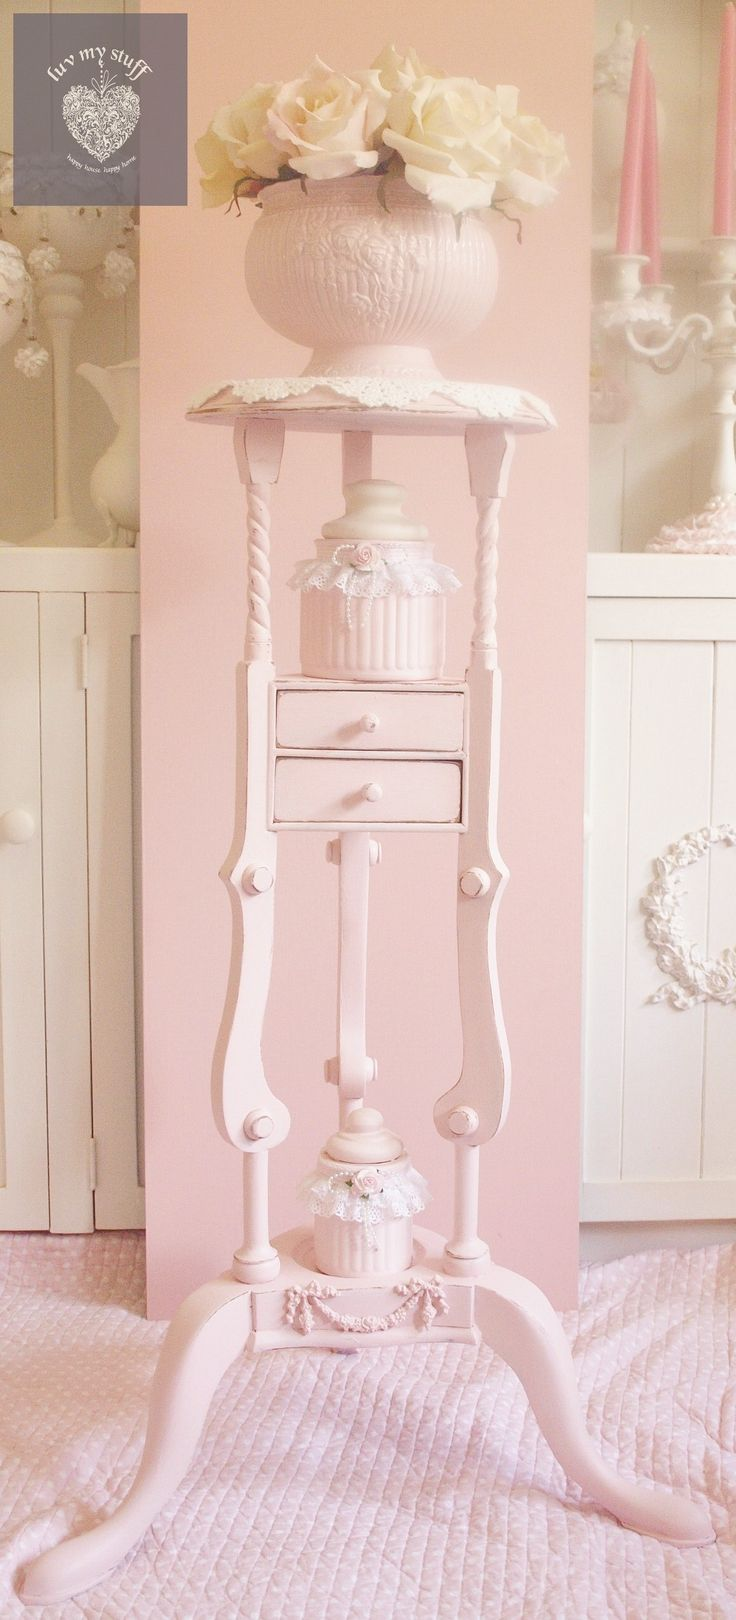 Les 5194 meilleures images du tableau my style shabby chic for Tableau style shabby